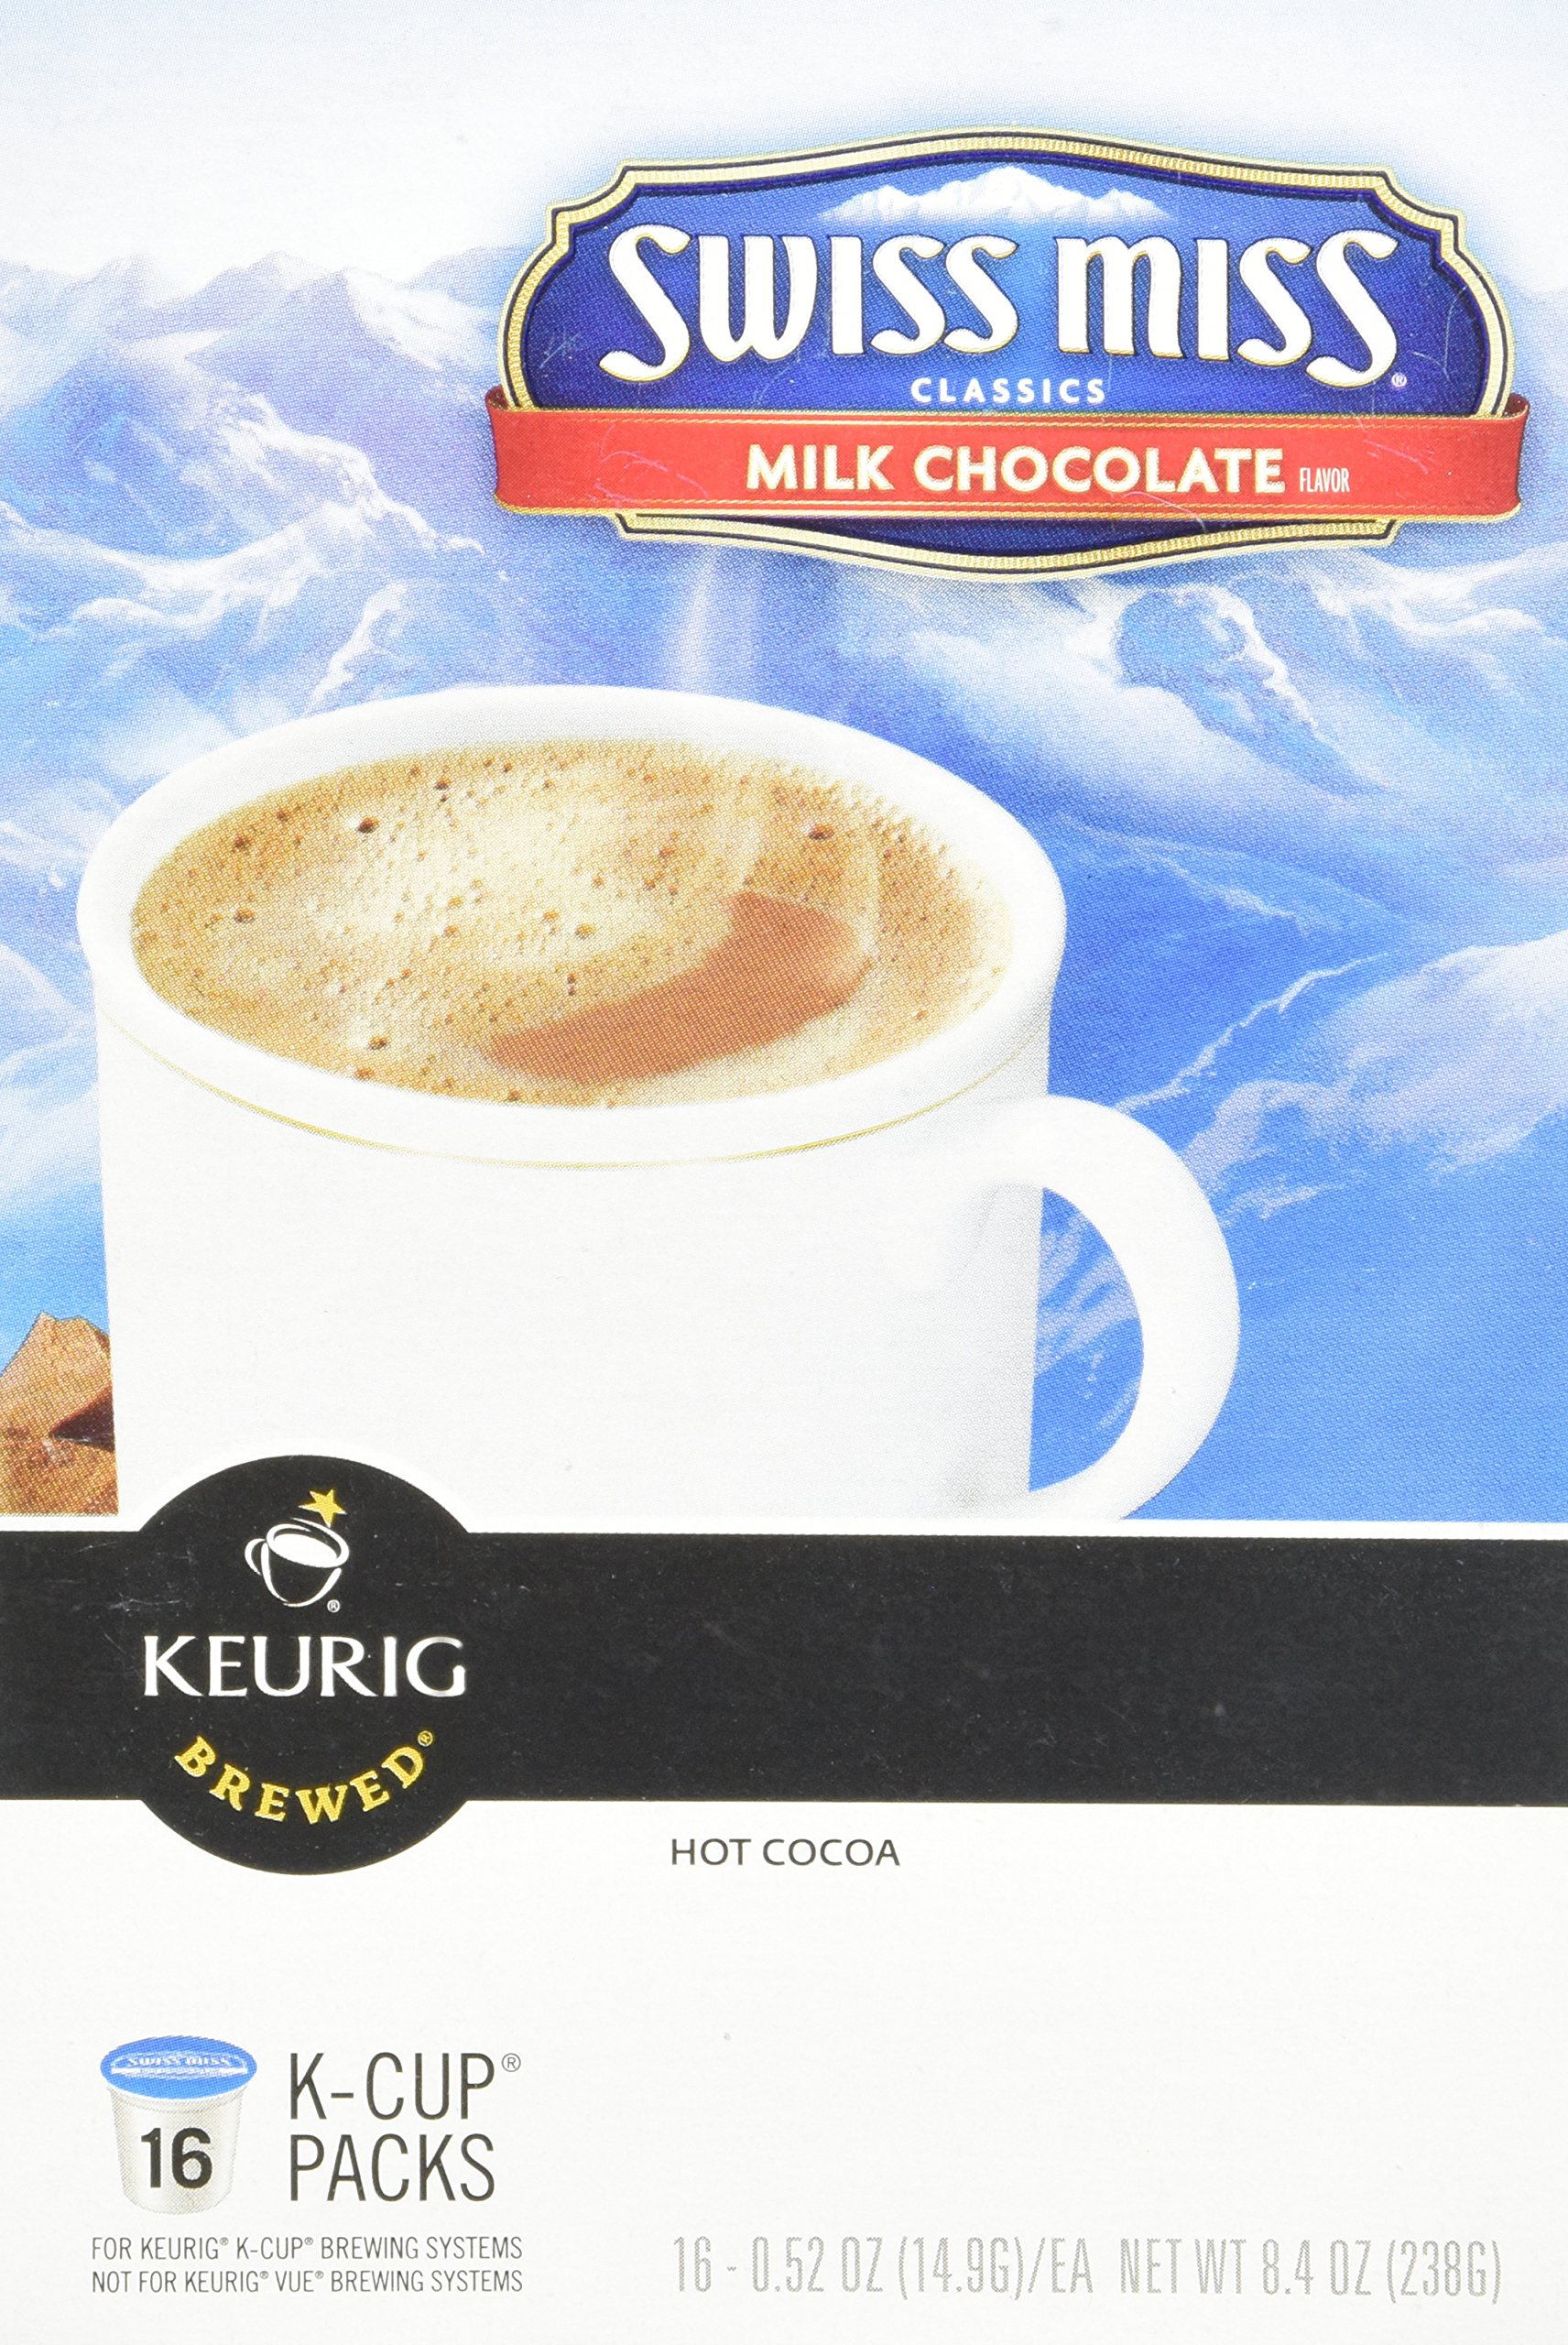 Swiss Miss Keurig K-cups Milk Chocolate Hot Cocoa - 32 Count by Swiss Miss (Image #8)